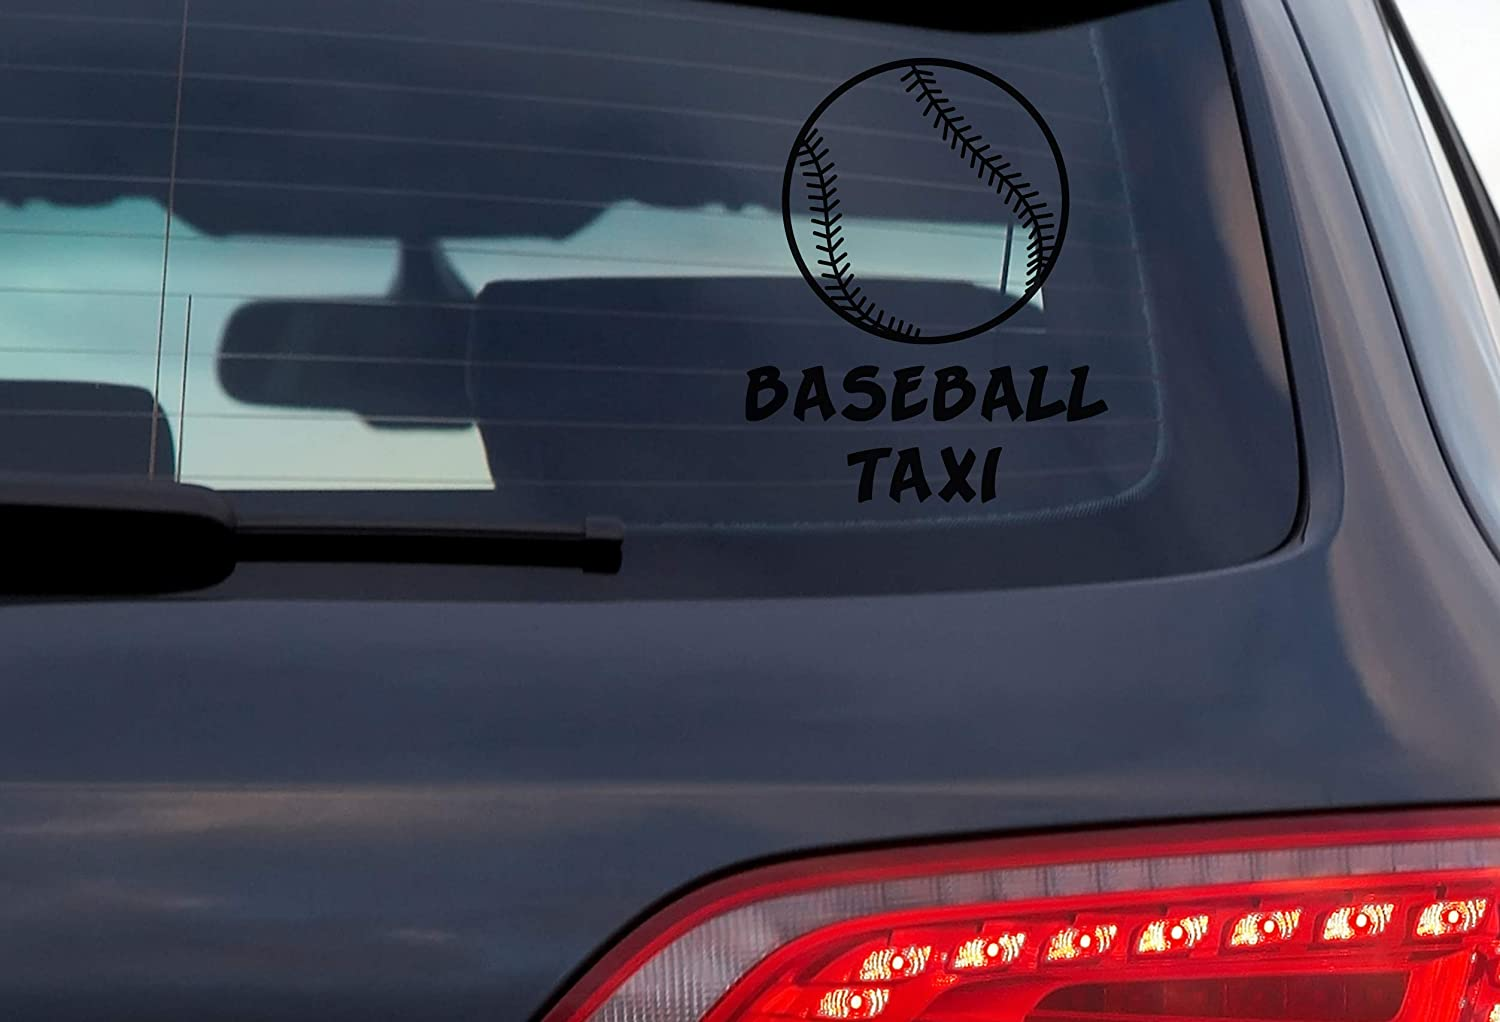 5 Inch Black Vinyl Decal for Car Window DOOMSDAYDECALS Baseball Taxi Exterior